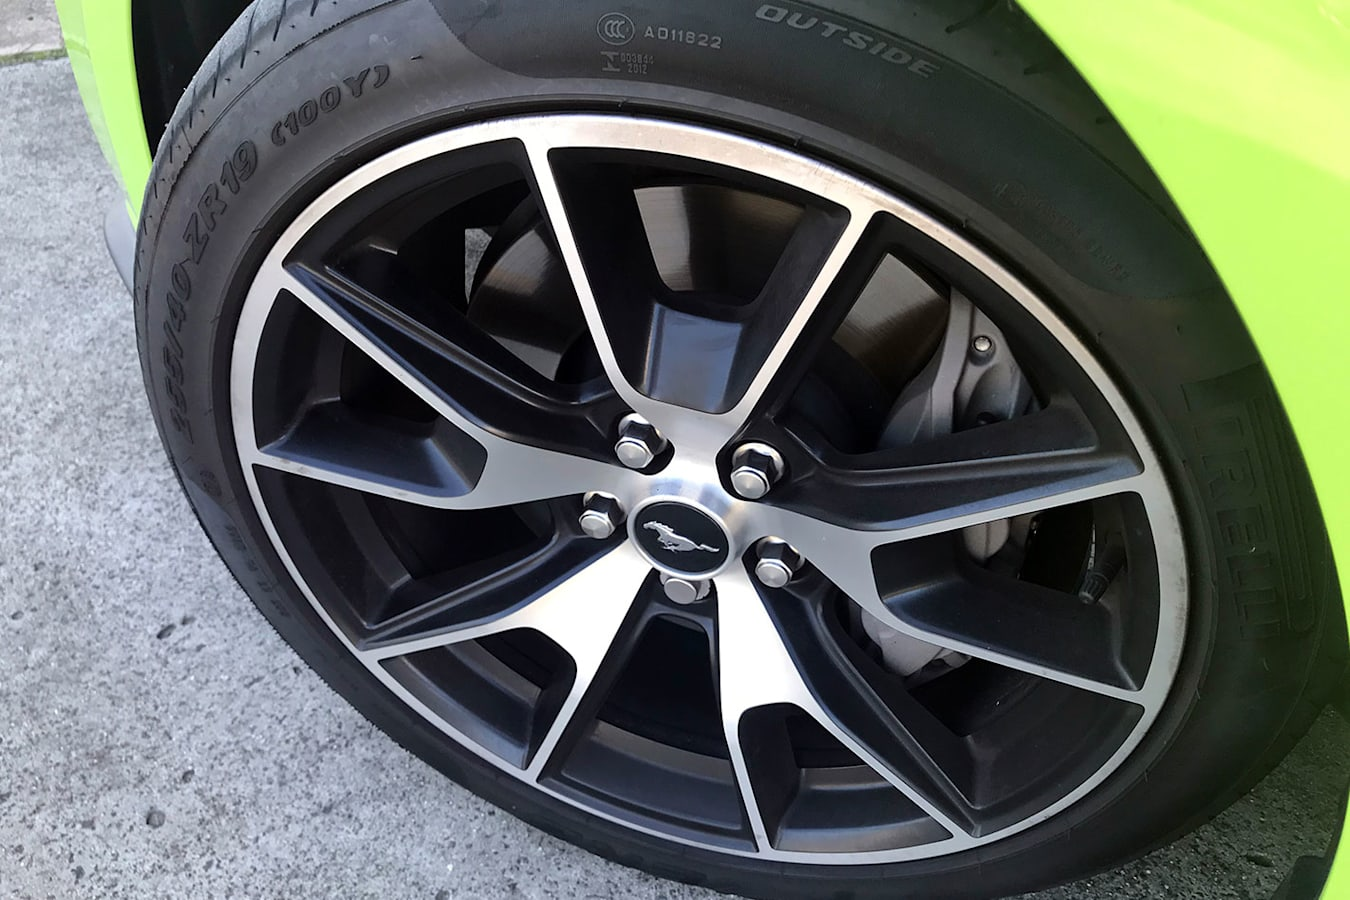 19-inch wheel with performance brakes